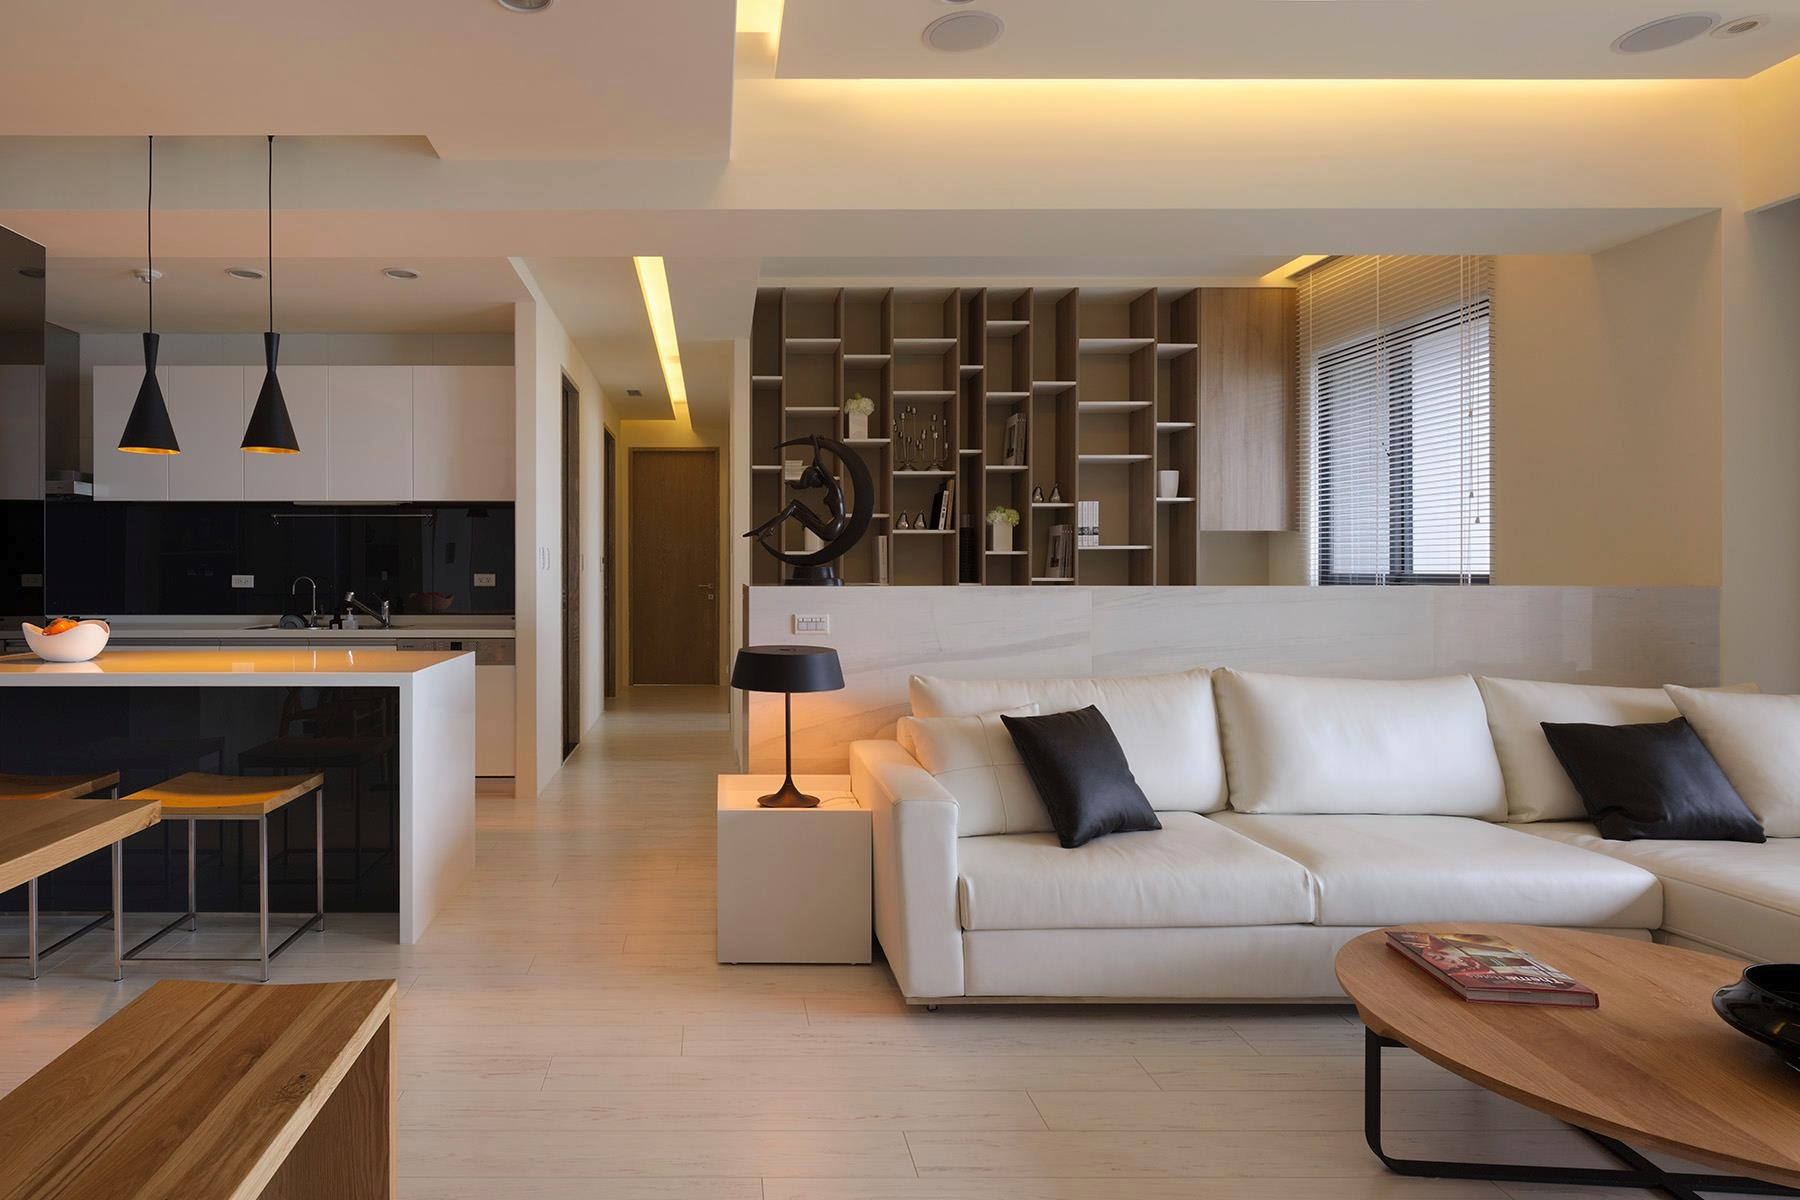 Open Plan Interior Design (3)